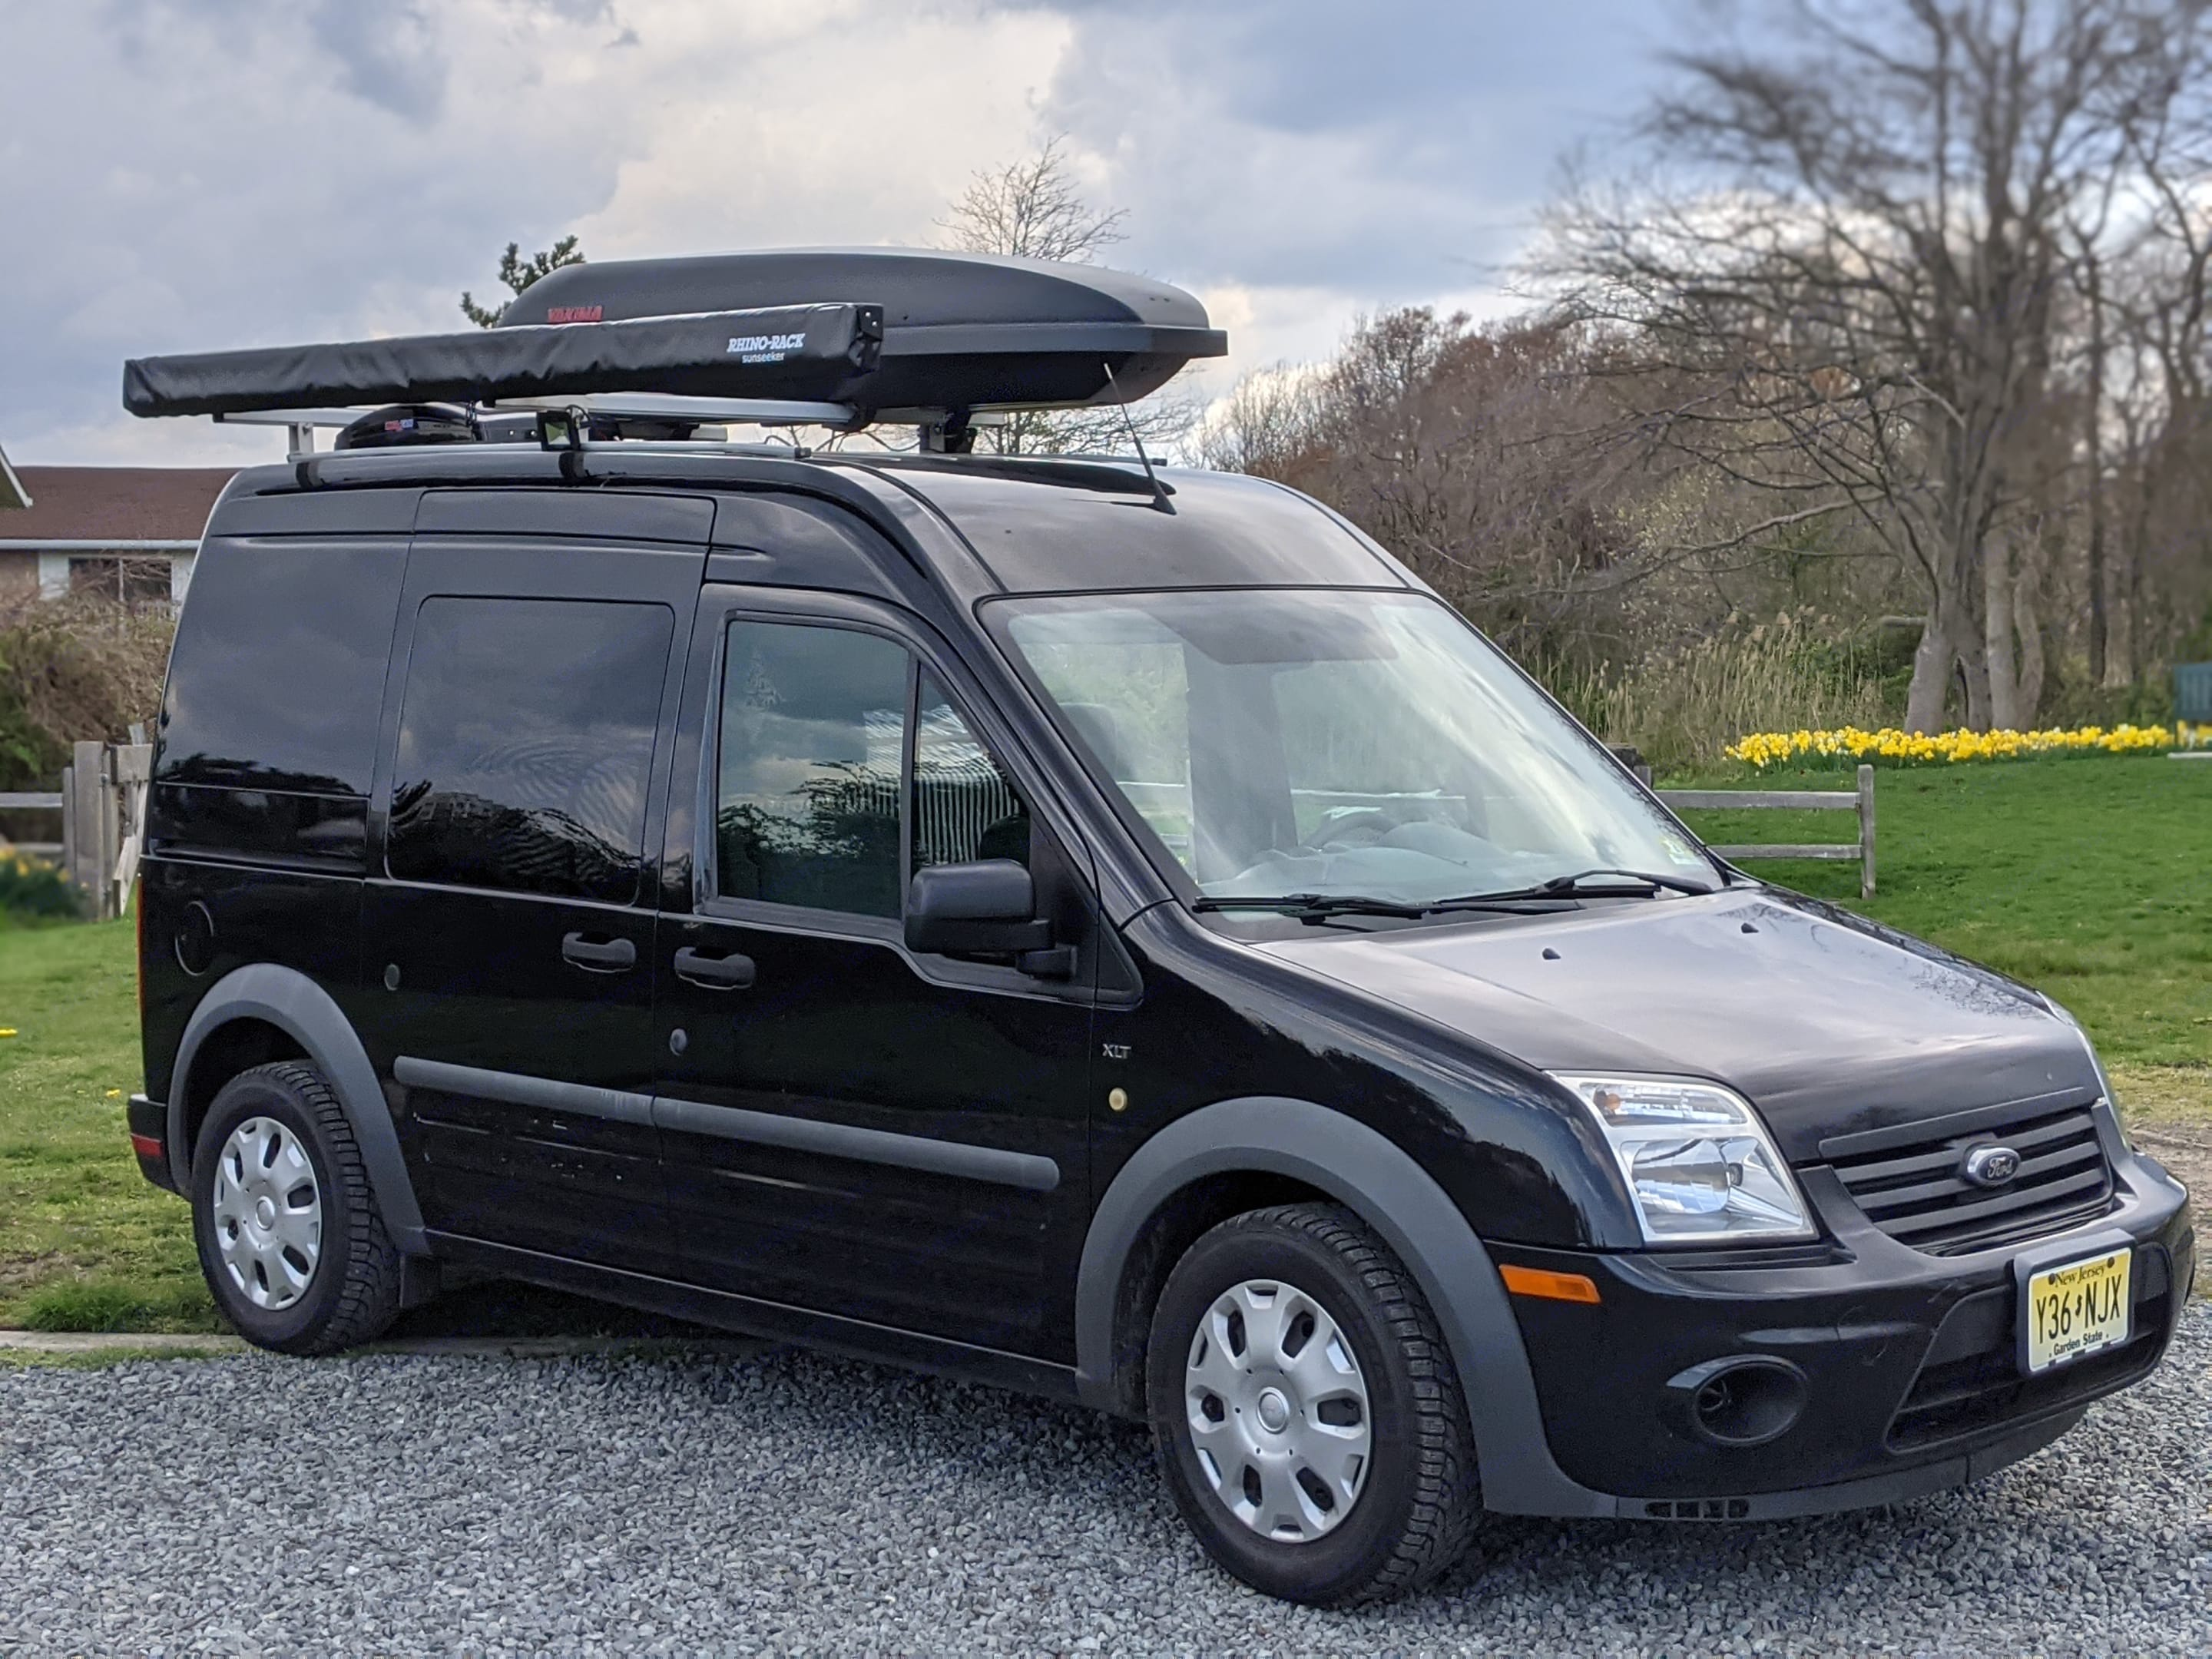 15ft long & 8ft tall allow for ease of driving, parking & maneuverability. Ford Transit Connect 2012